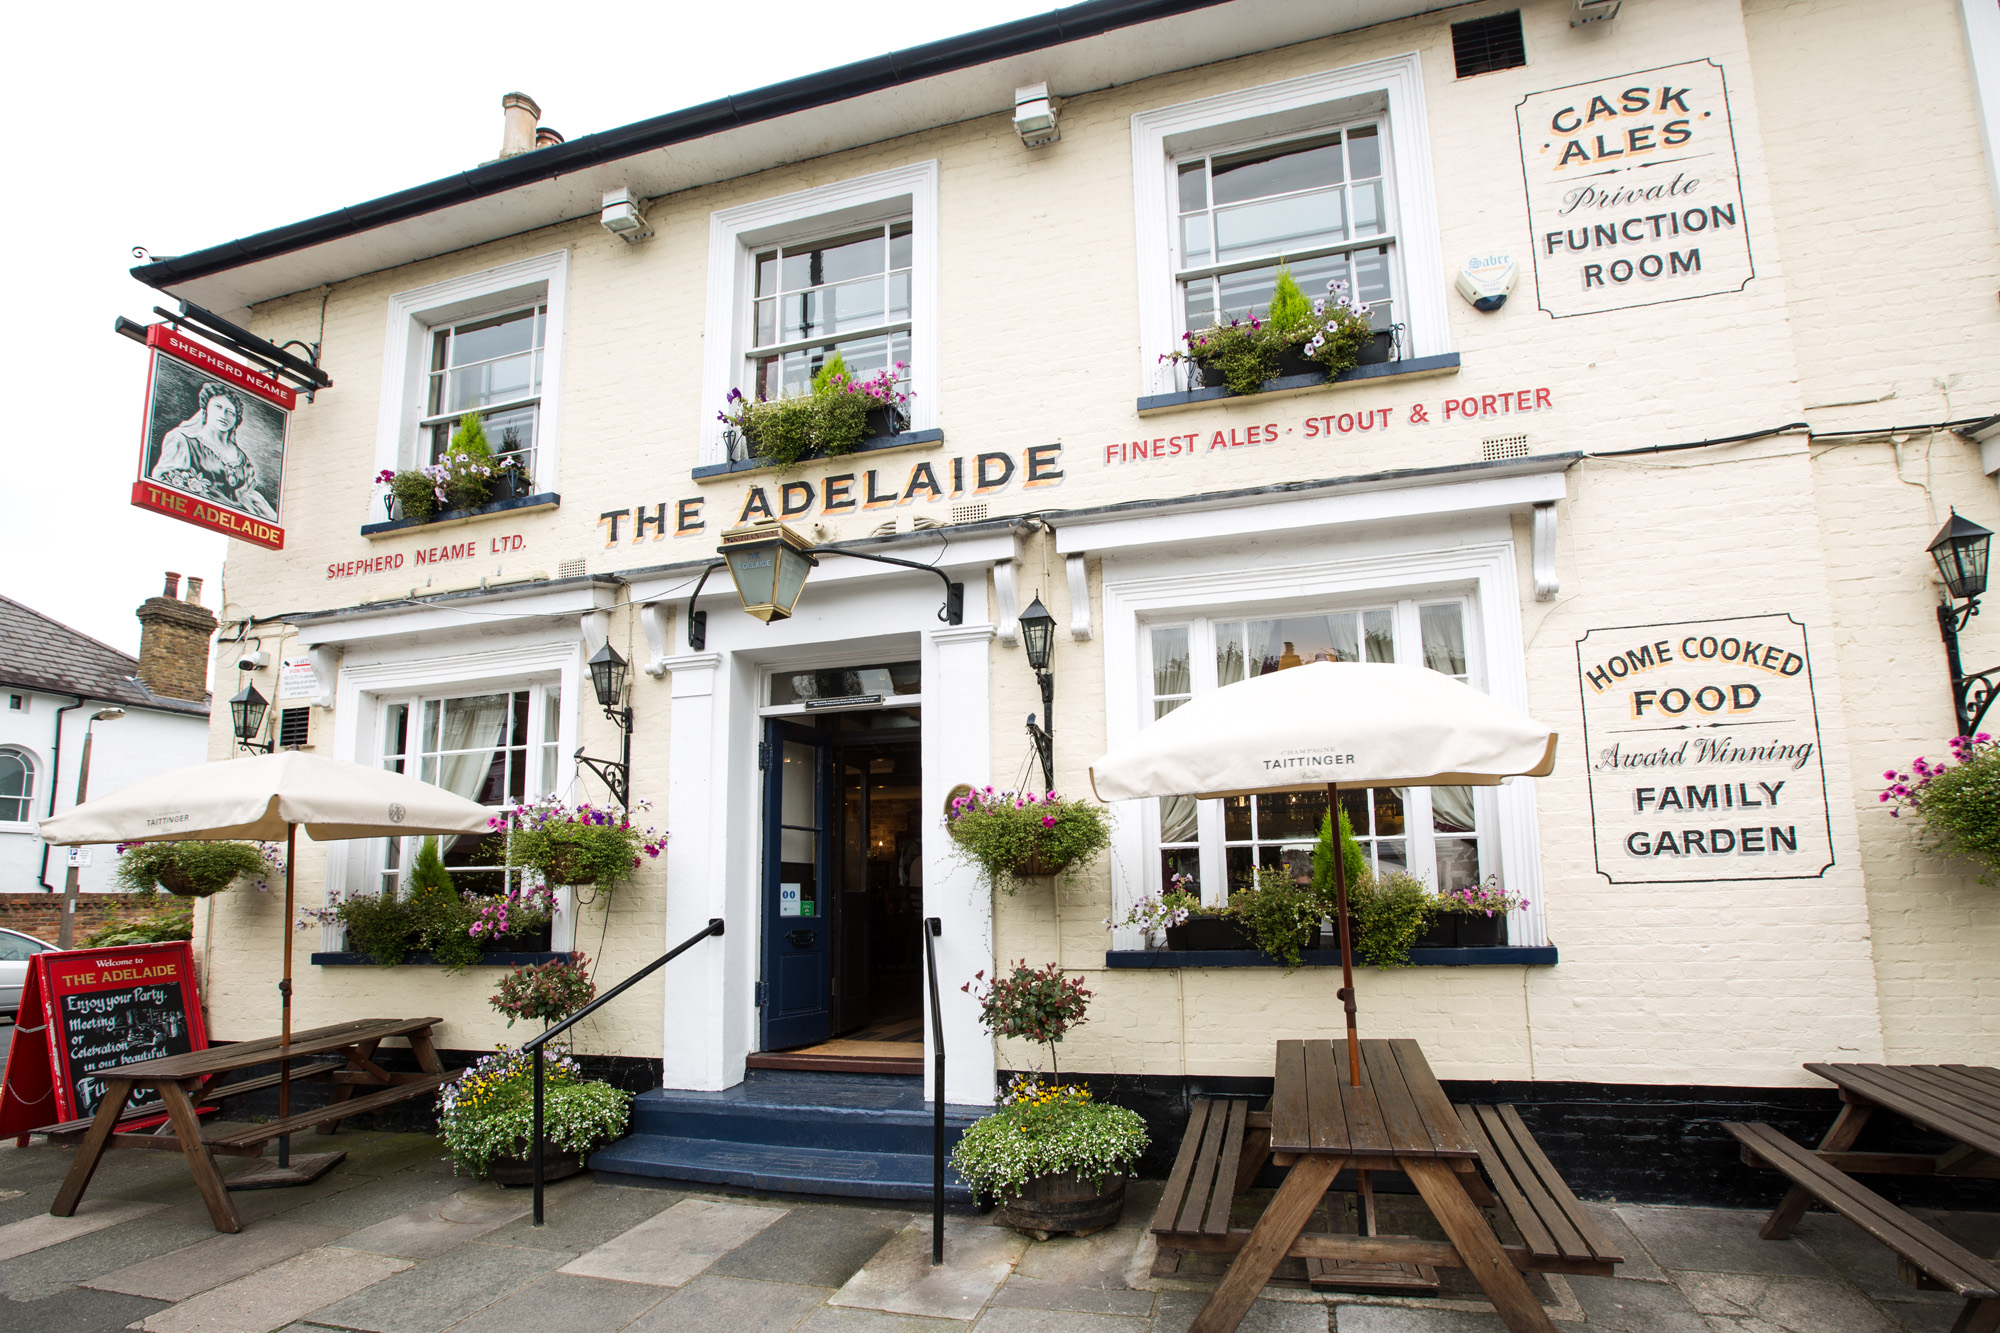 The Adelaide Teddington